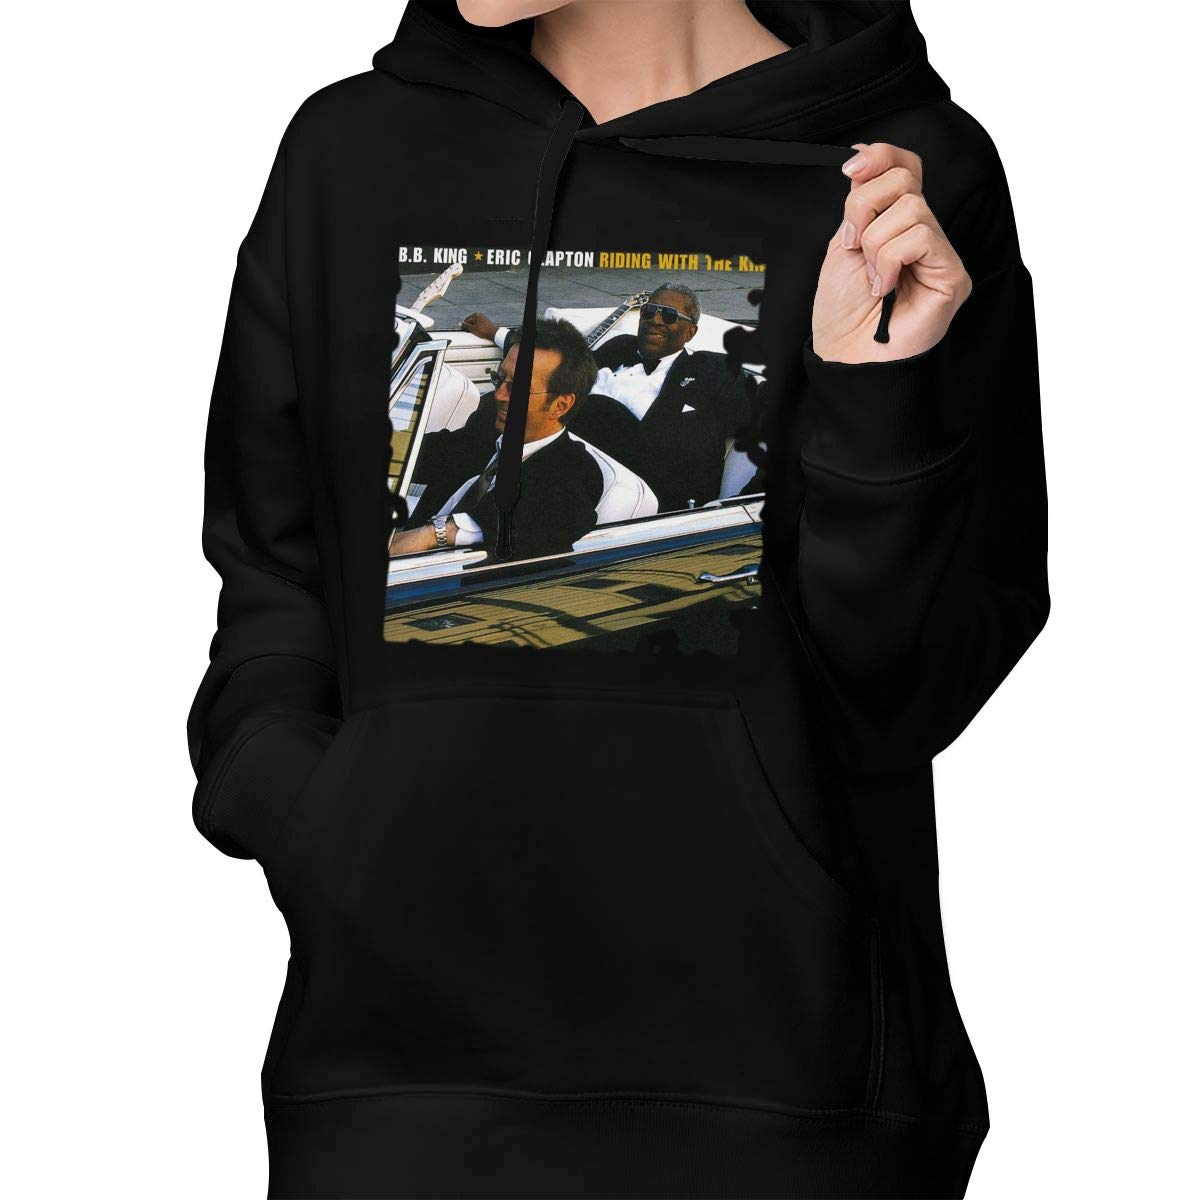 Qnchkopd Womens Eric Clapton Riding with The King Classic Sweater Black L